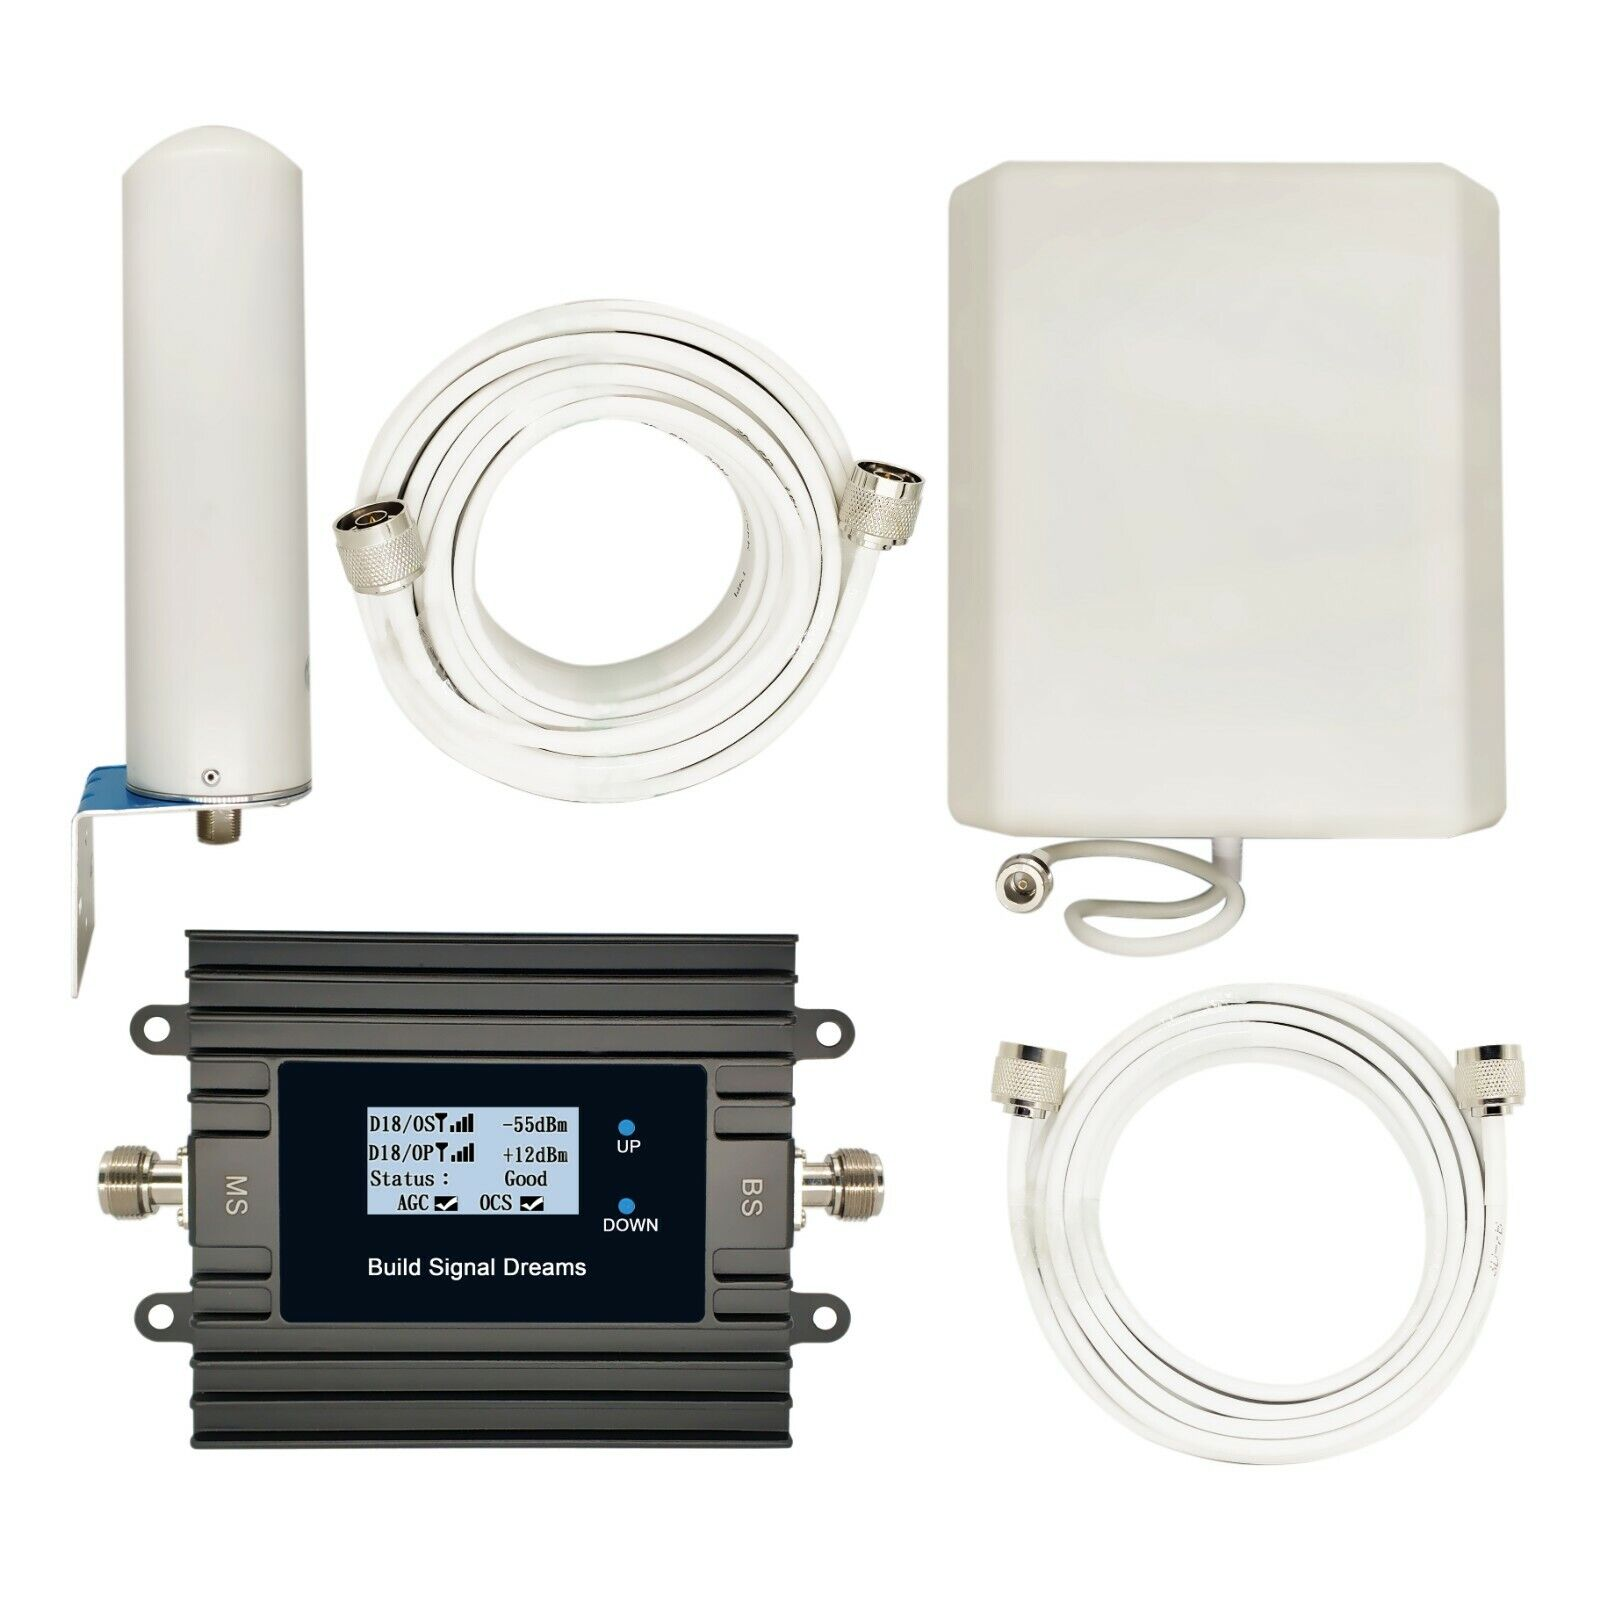 Cell Phone Signal Booster 4G Improve LTE700 Data AT&T Verizo